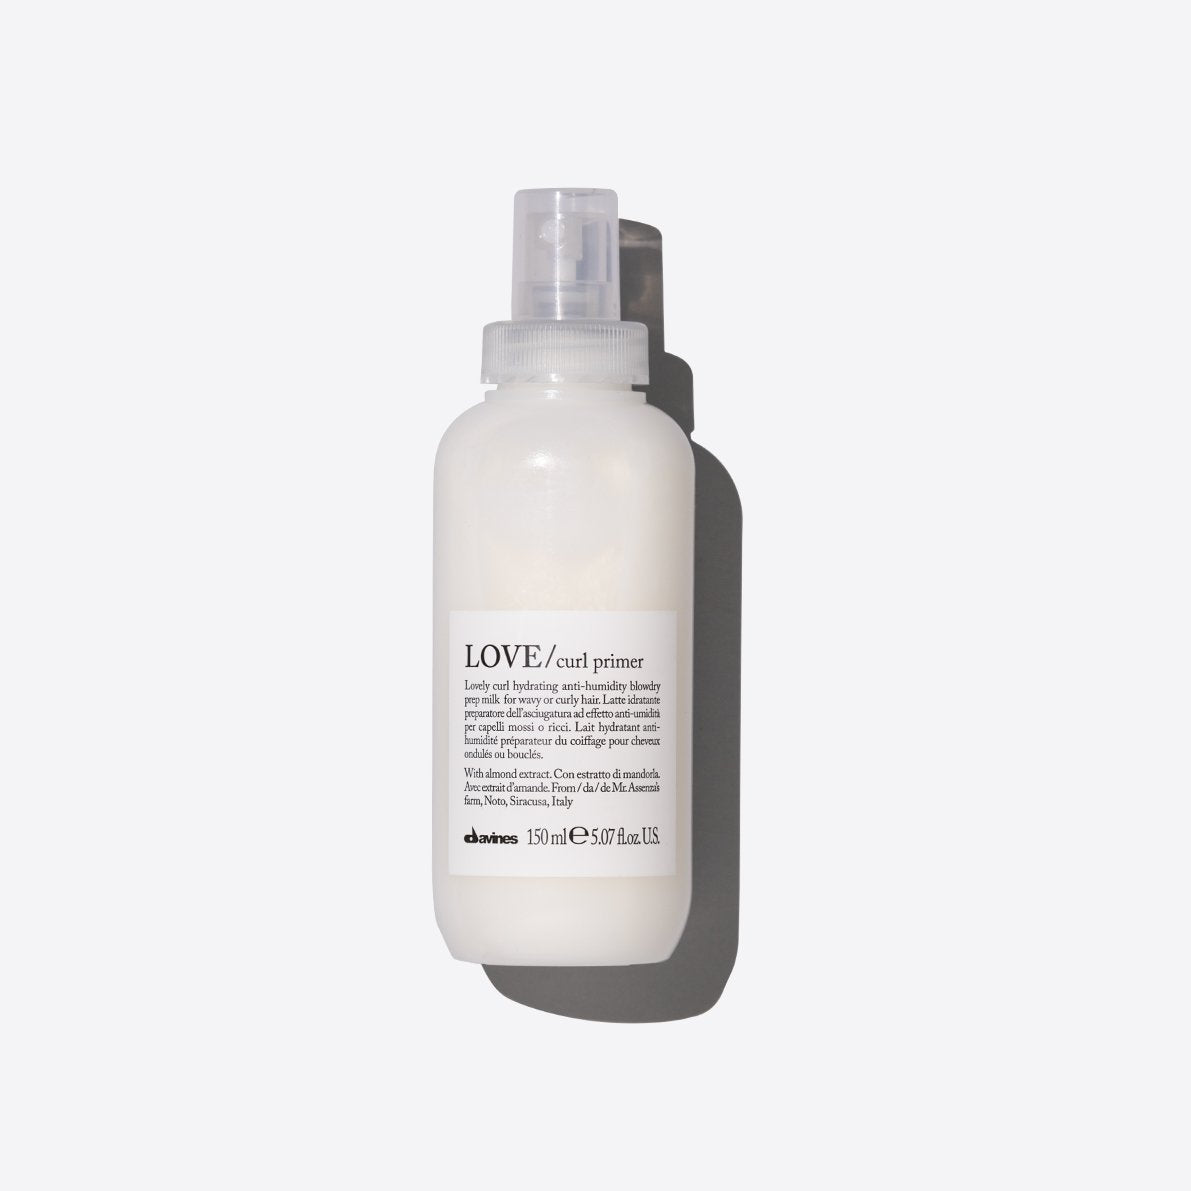 LOVE CURL Primer by Davines